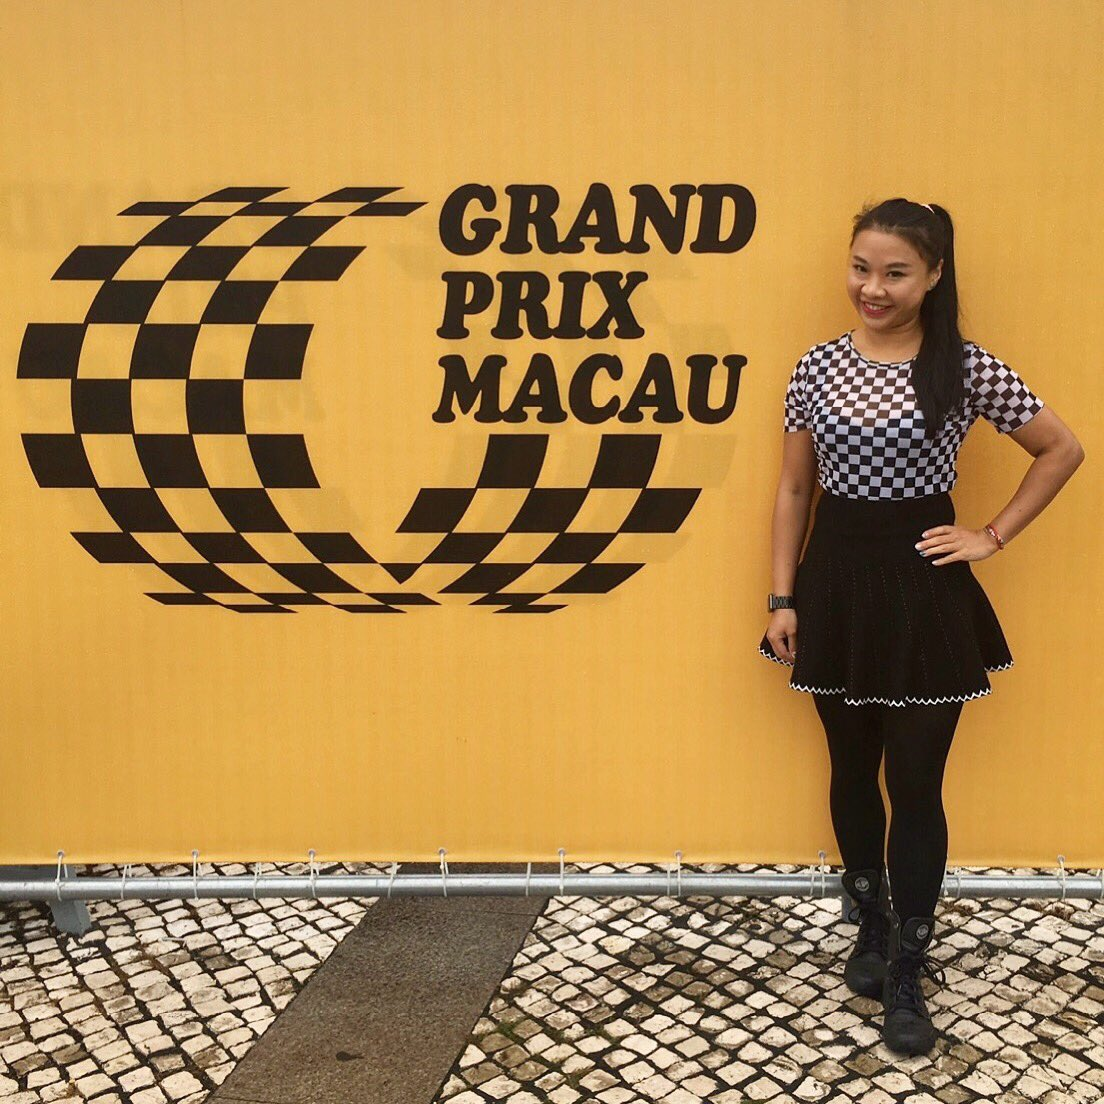 test Twitter Media - louder and higher 🏎🏁♥️ * Outfit by : Factory Direct By T. 🌶 @fdbthk  64th #MacauGrandPrix #MacauGP #澳門格蘭披治大賽車 #suncity #Macau #Macau2017 #nofilter #babychili https://t.co/Ojx8sPfcAd